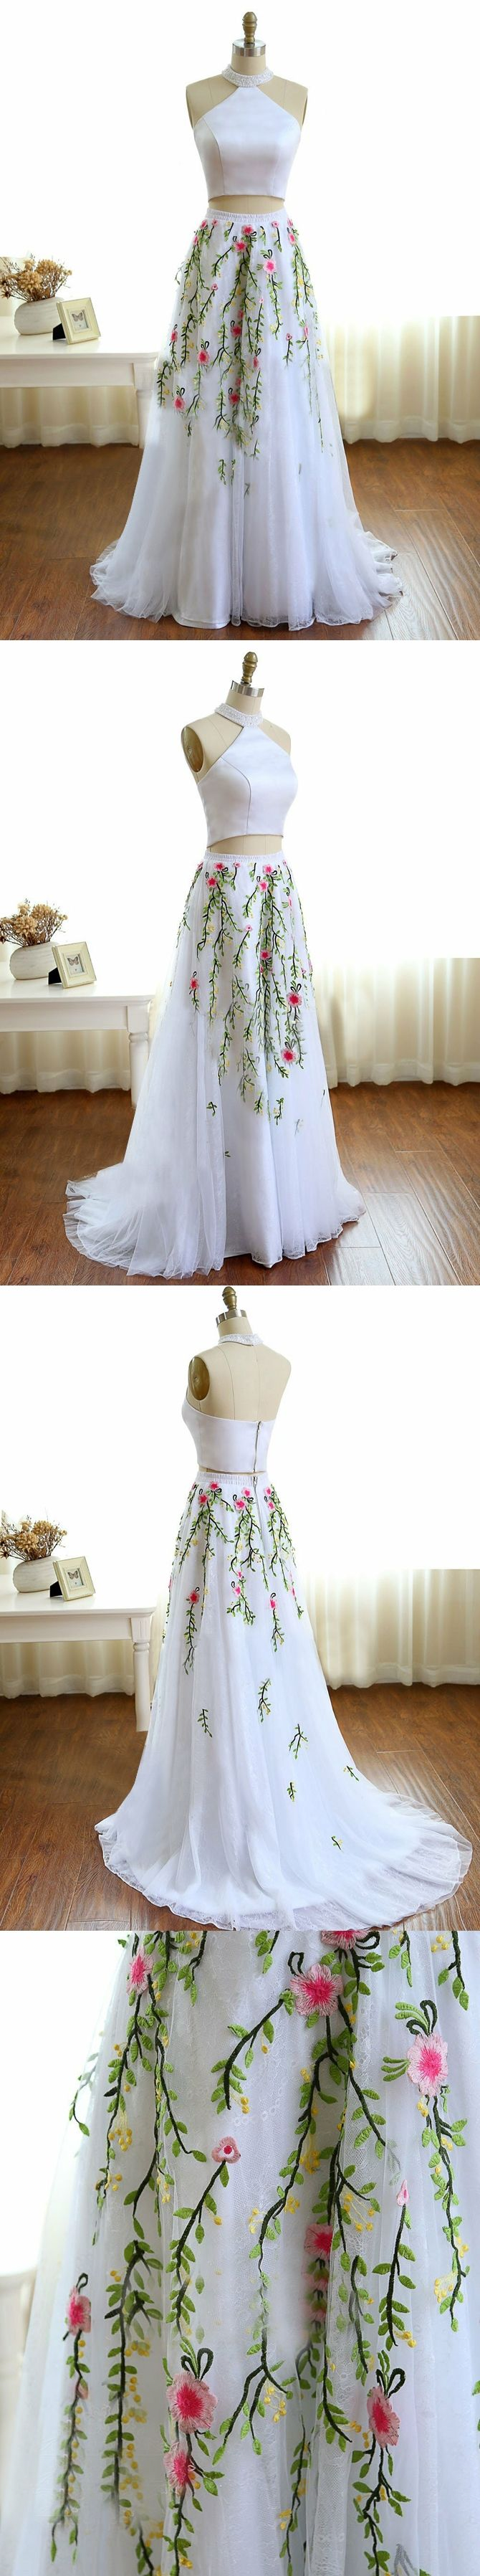 Two piece prom dresses aline high neck lace embroidery white long